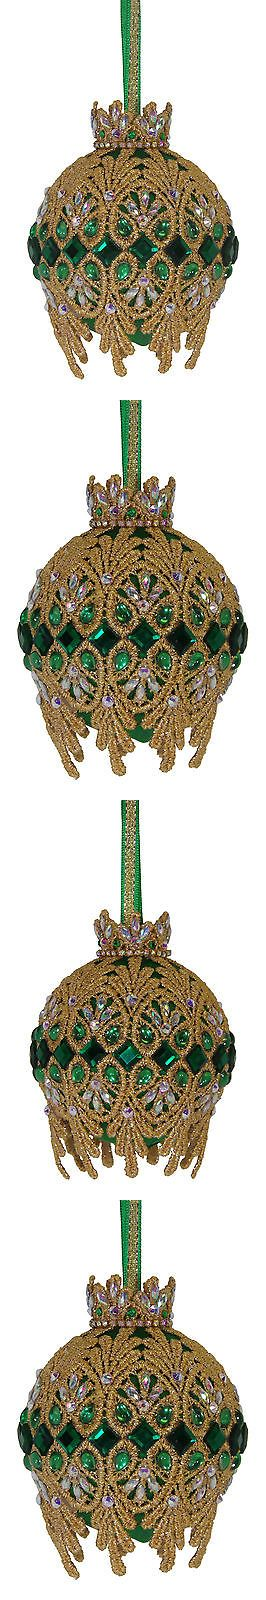 Other Jewelry Making Kits 162102: Ornament Kit - Padriag S Cloak -> BUY IT NOW ONLY: $31 on eBay!